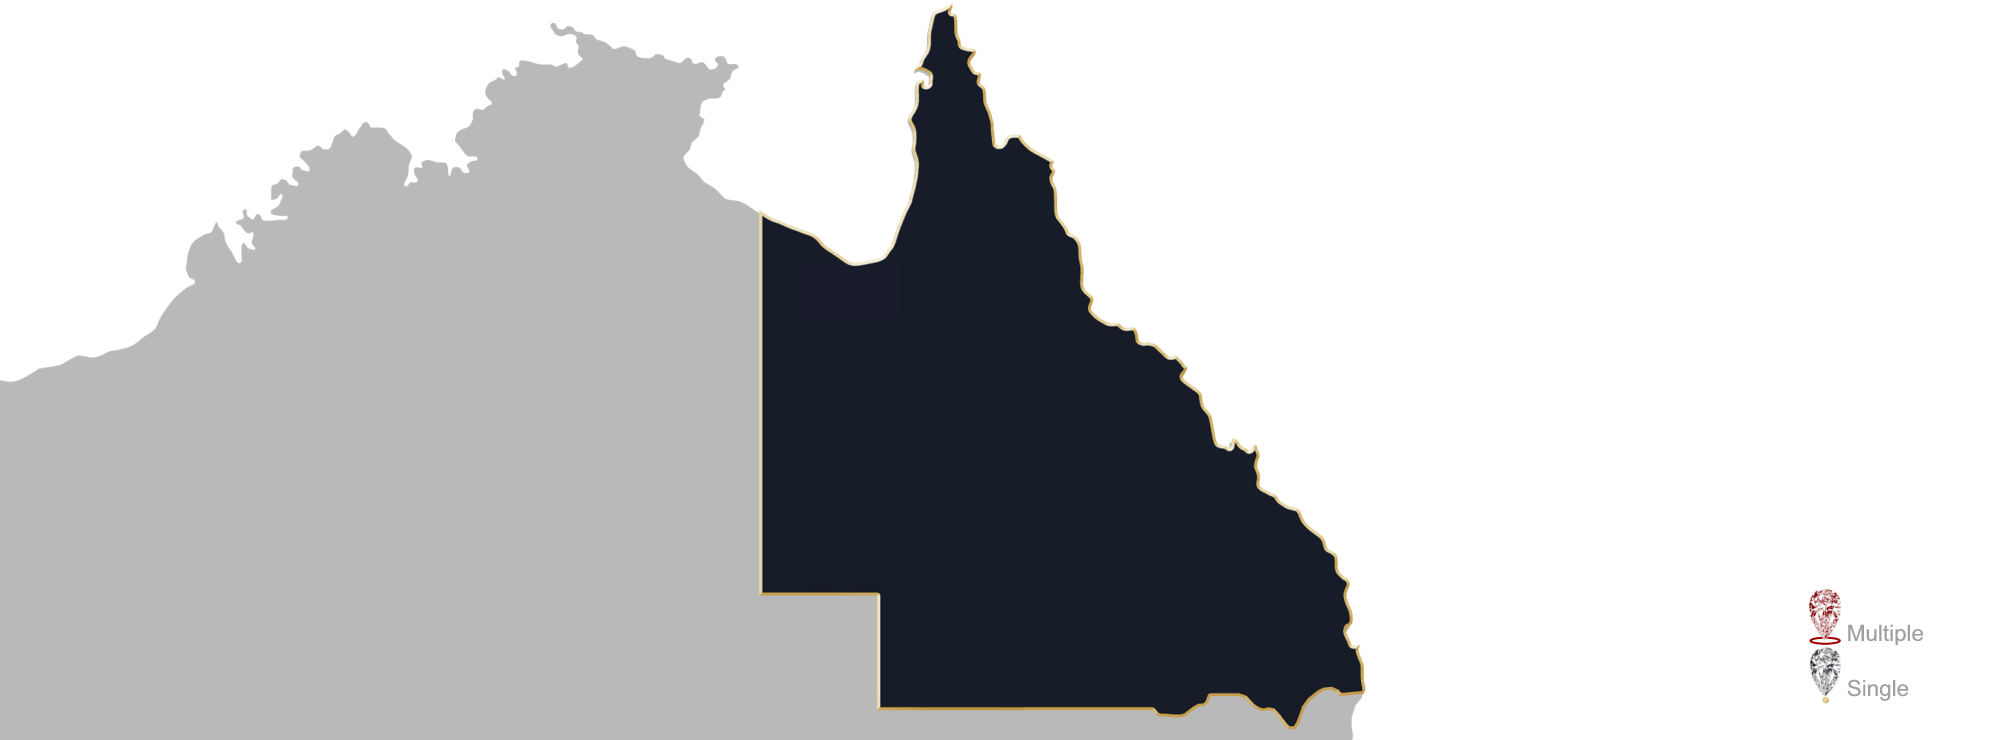 Map showing location of jewellery valuers in Queensland